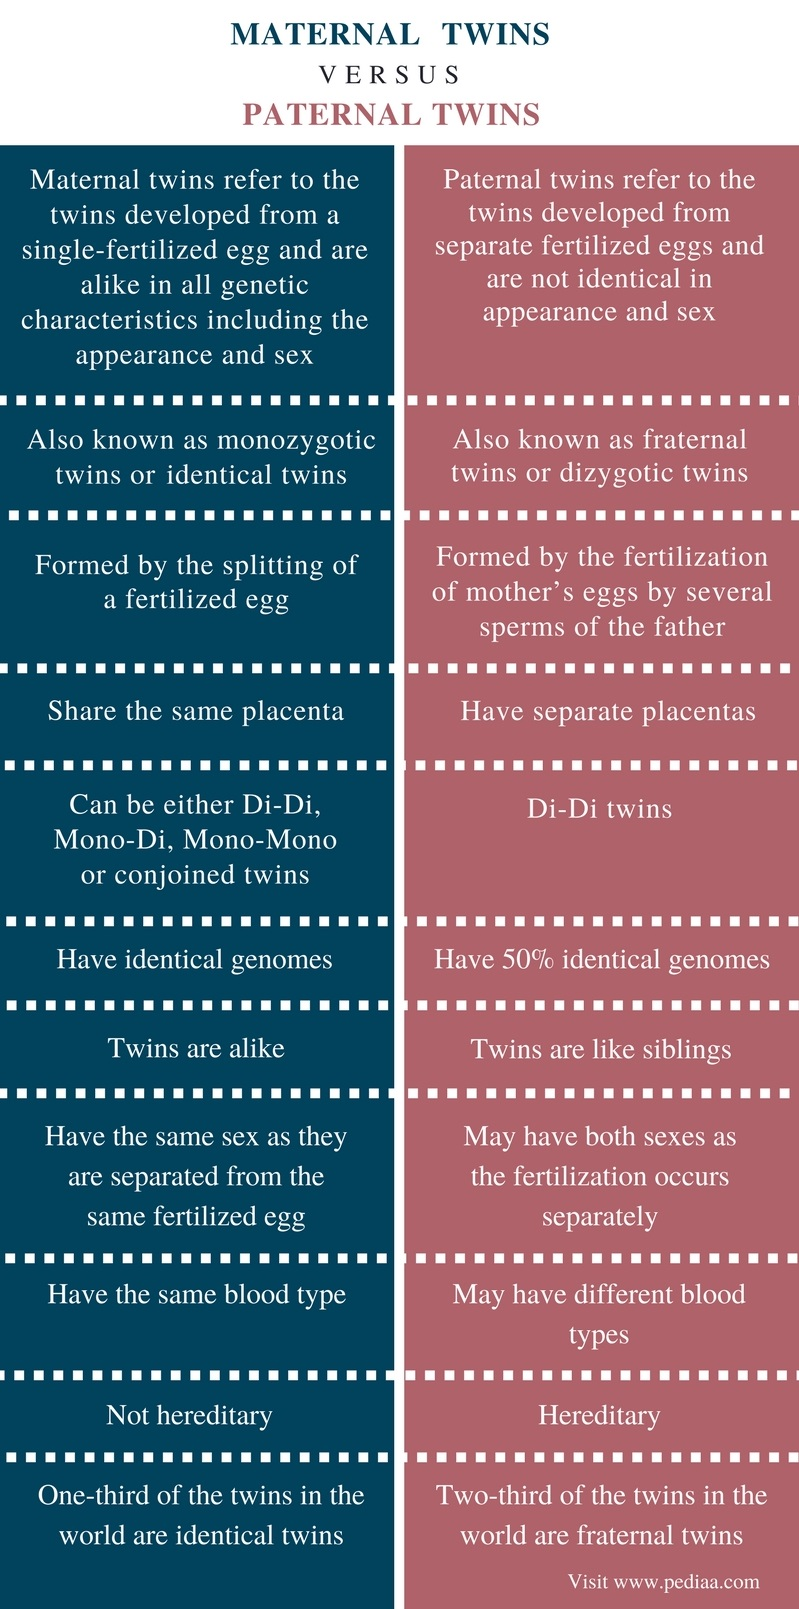 Difference Between Maternal and Paternal Twins - Comparison Summary